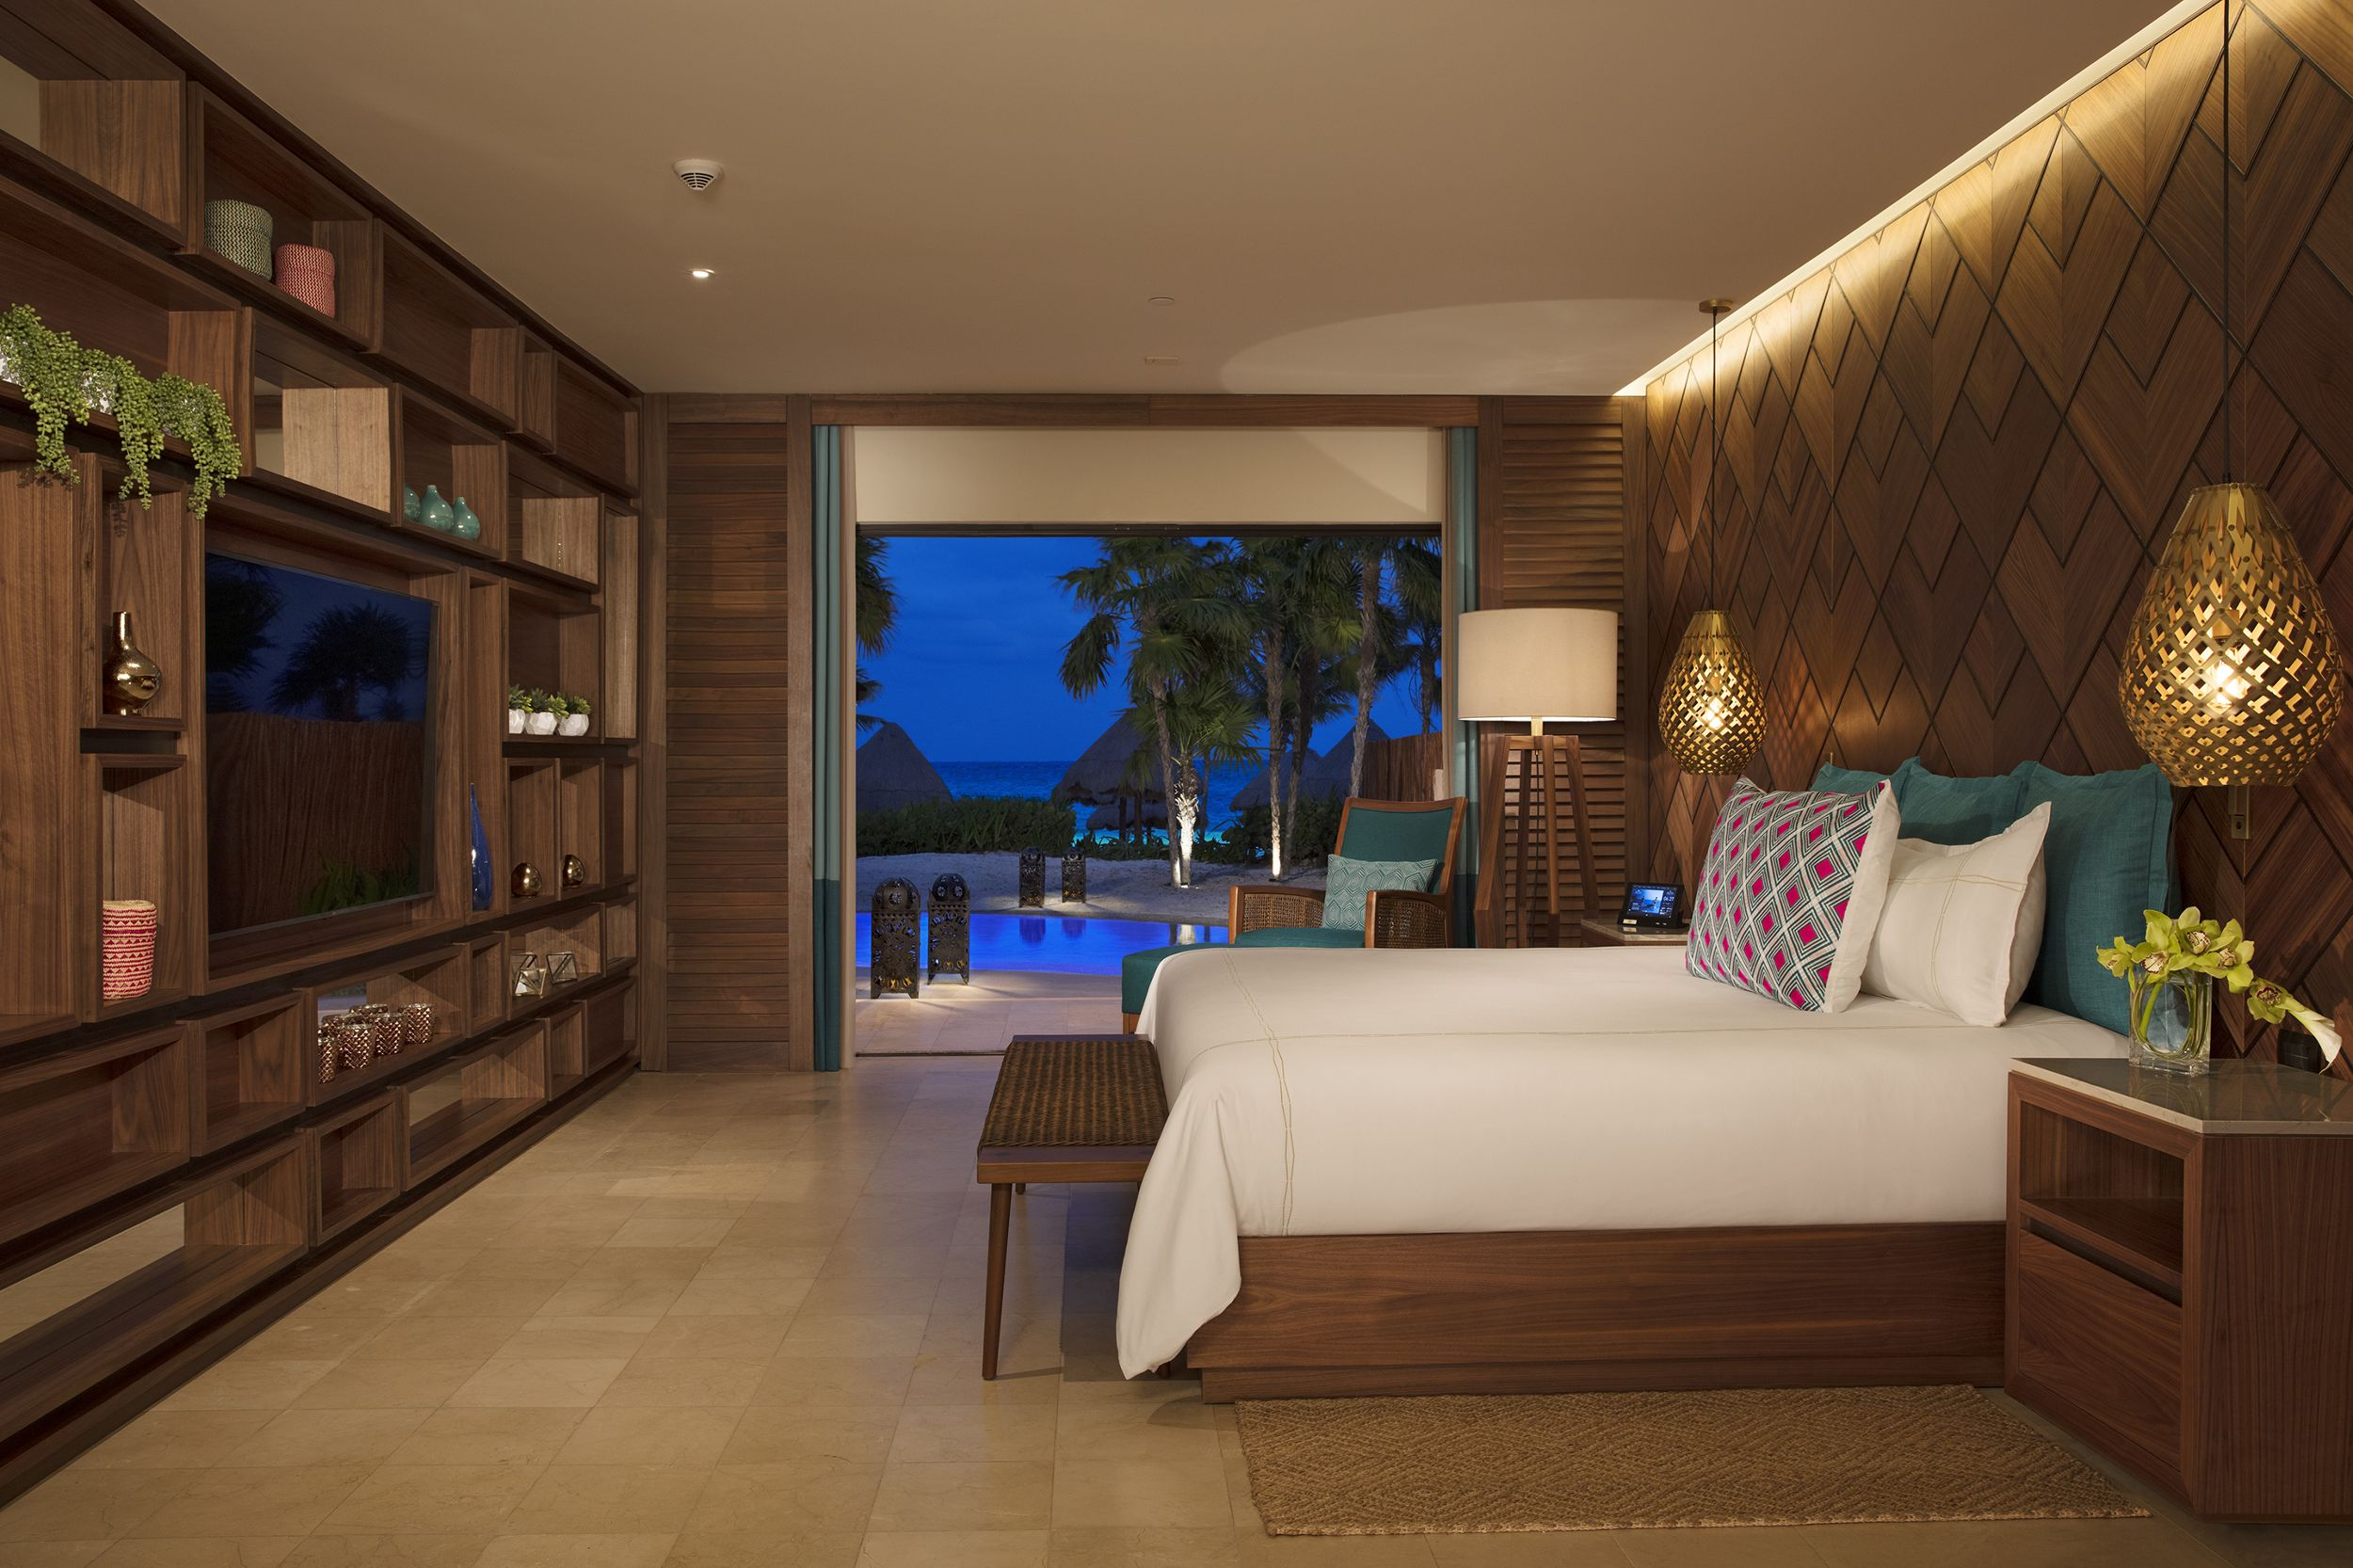 Luxury Resort Suite At Night